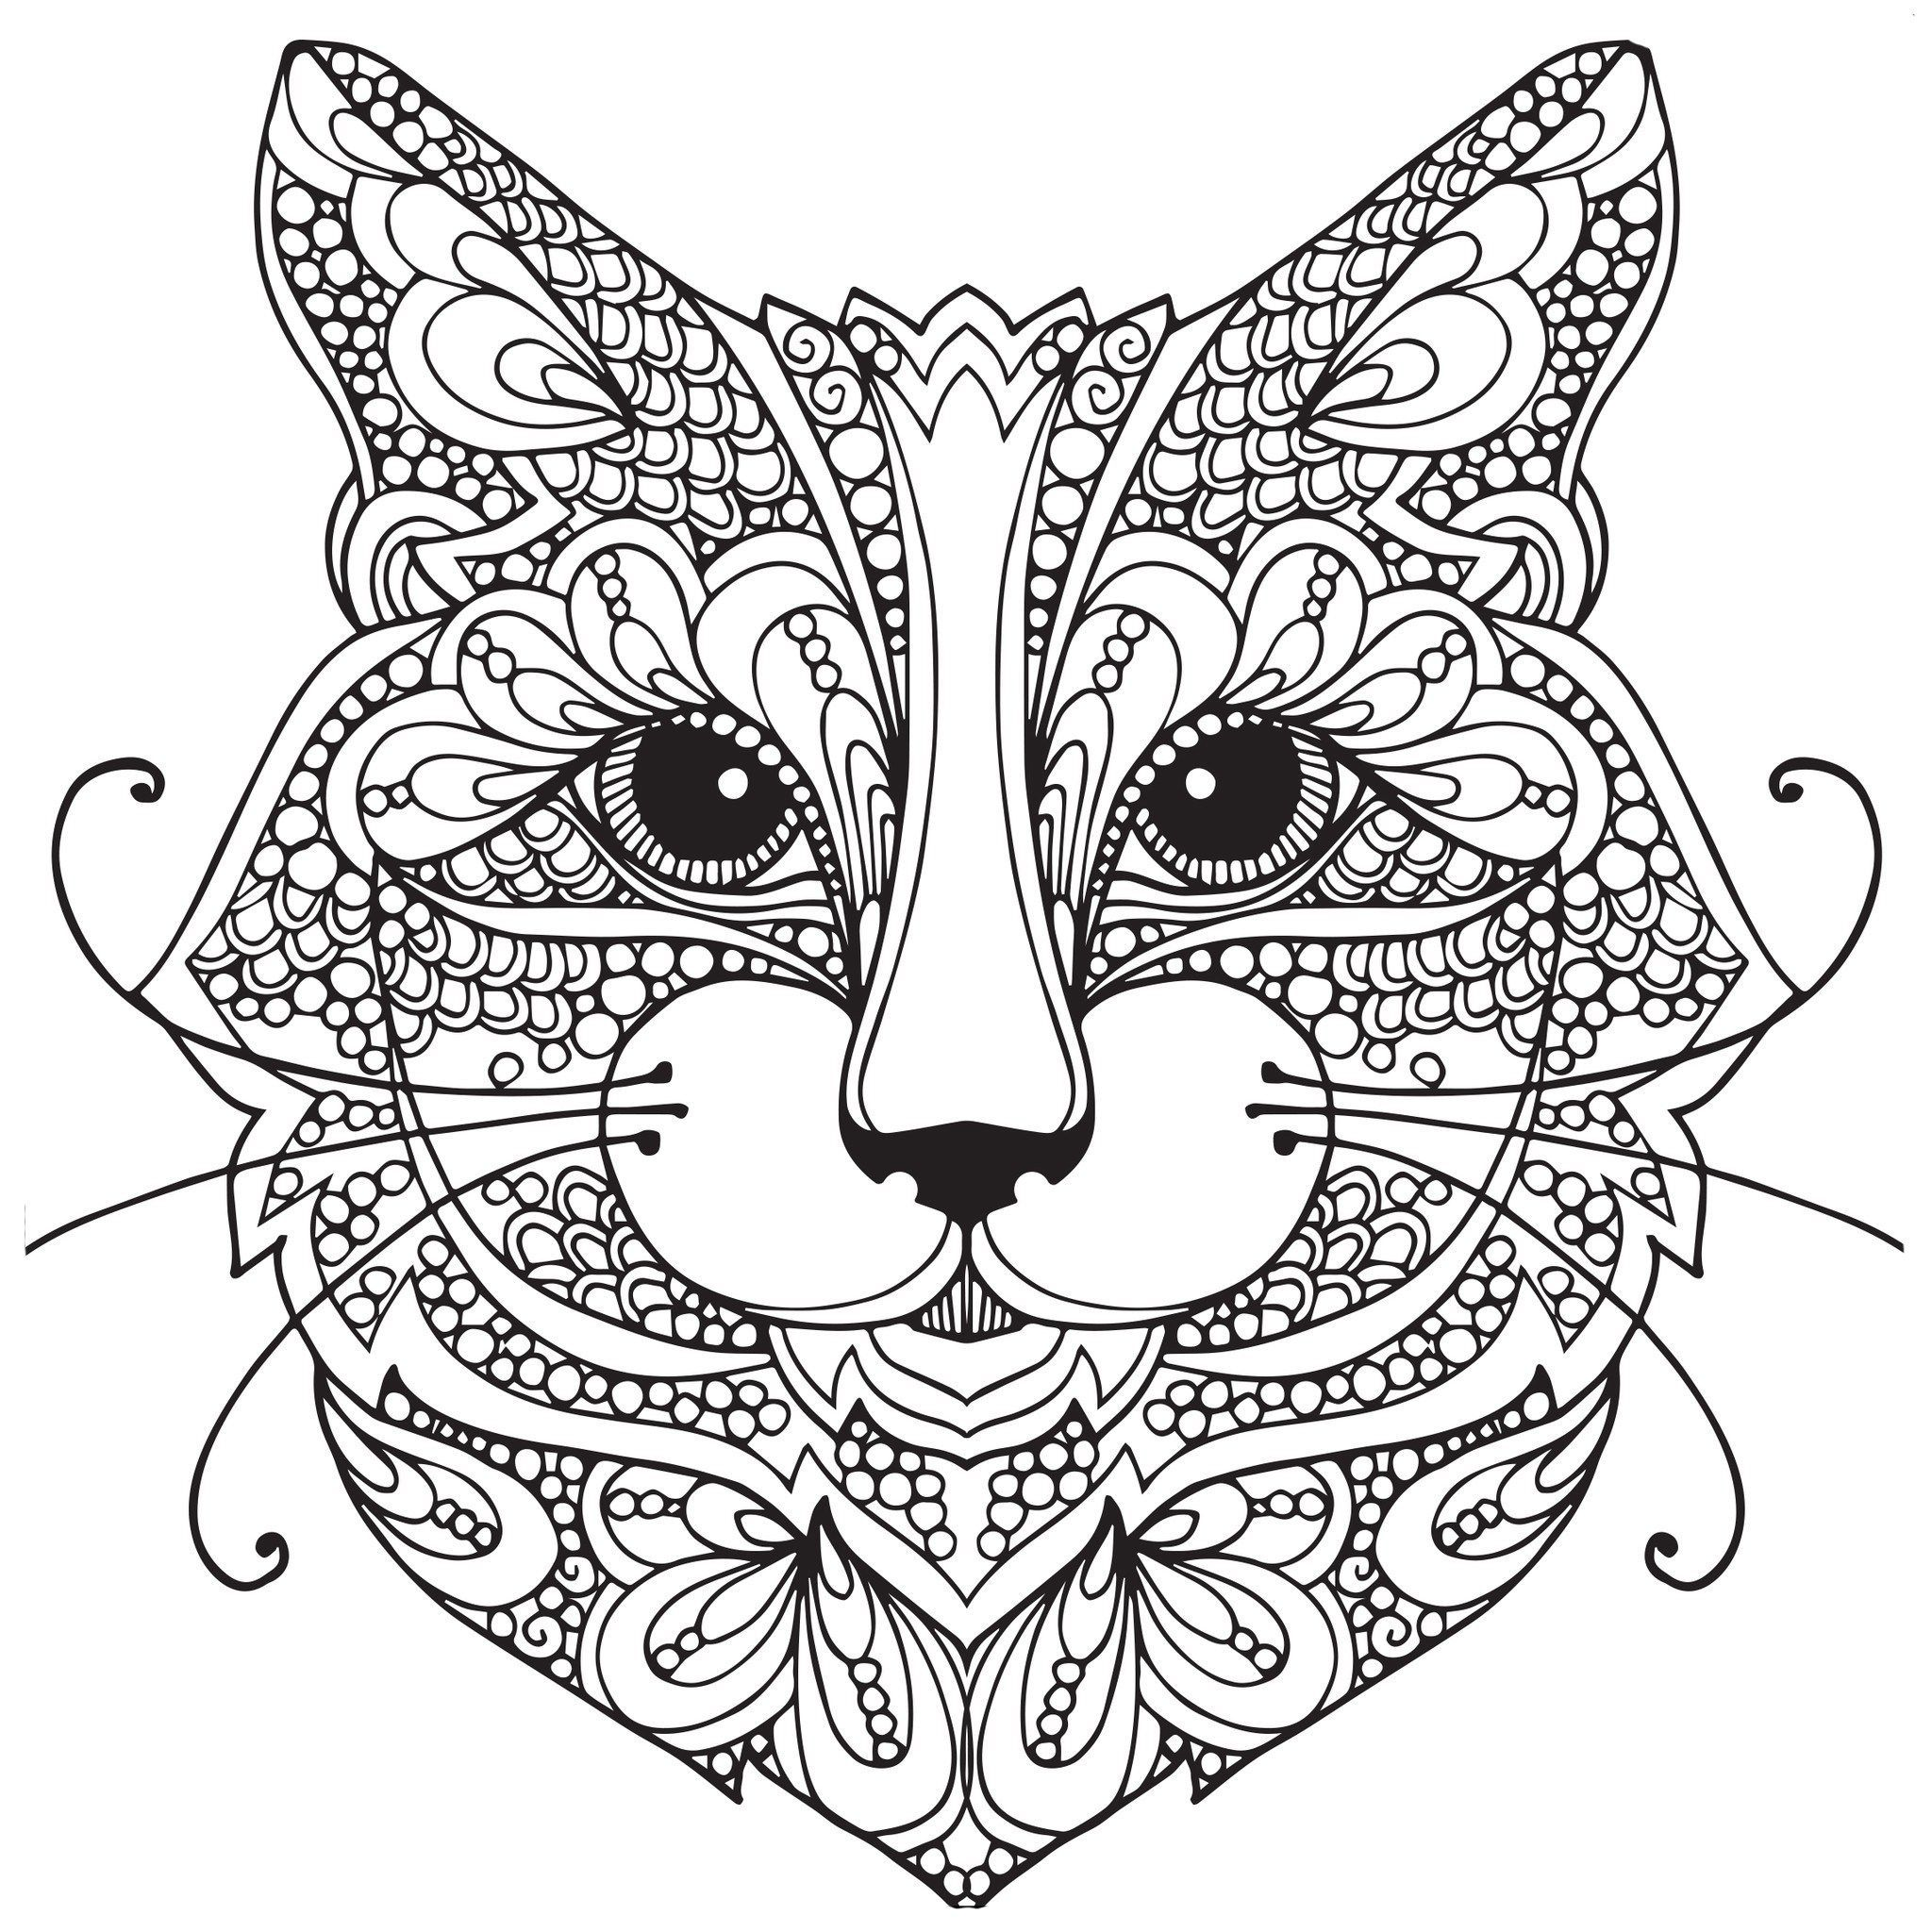 Cat Coloring Pages For Adults Best Coloring Pages For Kids Cat Coloring Page Animal Coloring Pages Cat Coloring Book